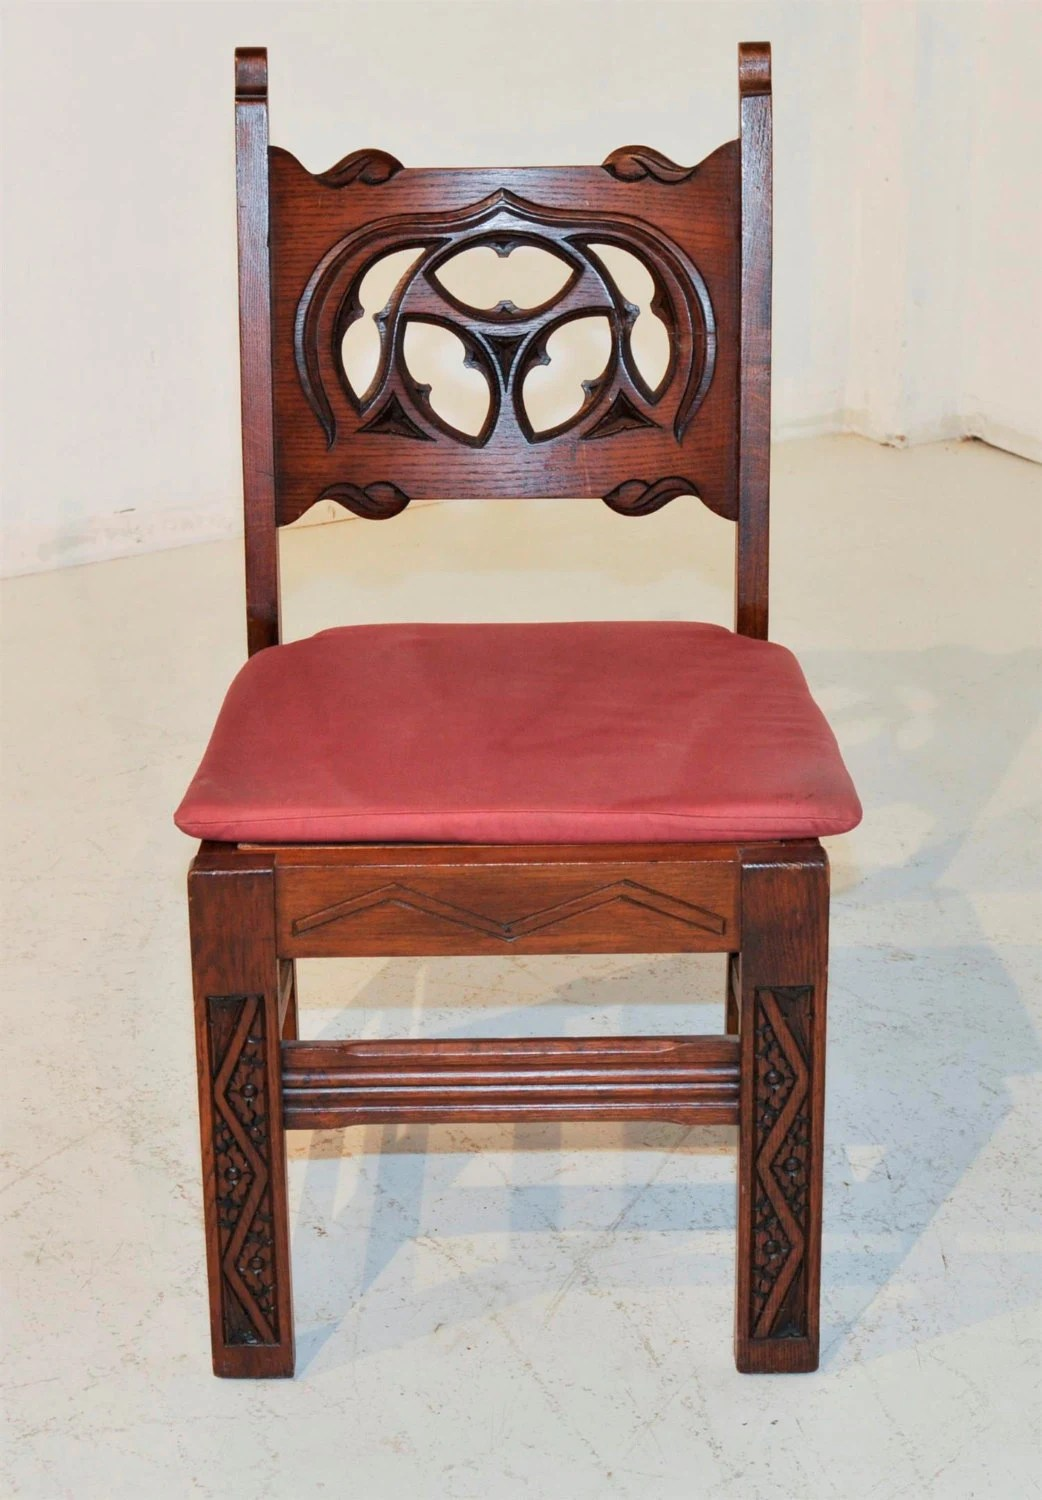 medieval dining chairs graco blossom 4 in 1 high chair seating system 2 gothic carved backs solid by